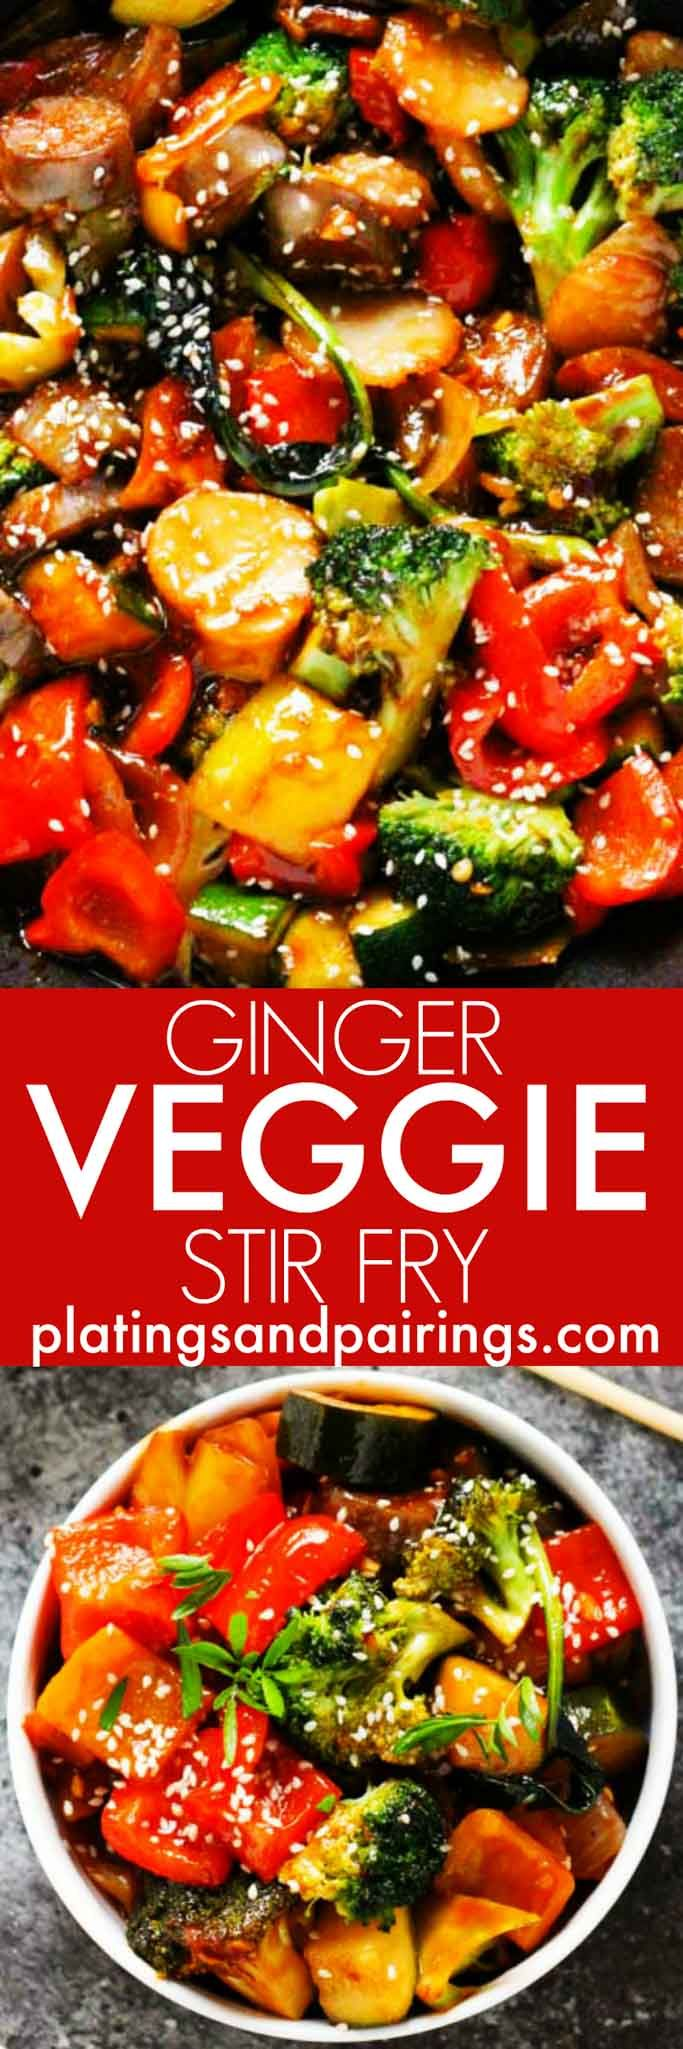 This Ginger Veggie Stir Fry is bursting with lots of fresh vegetables and coated with a spicy sauce flavored with garlic and ginger. Plus, it comes together in under 30 minutes!   platingsandpairings.com #vegetablestirfry